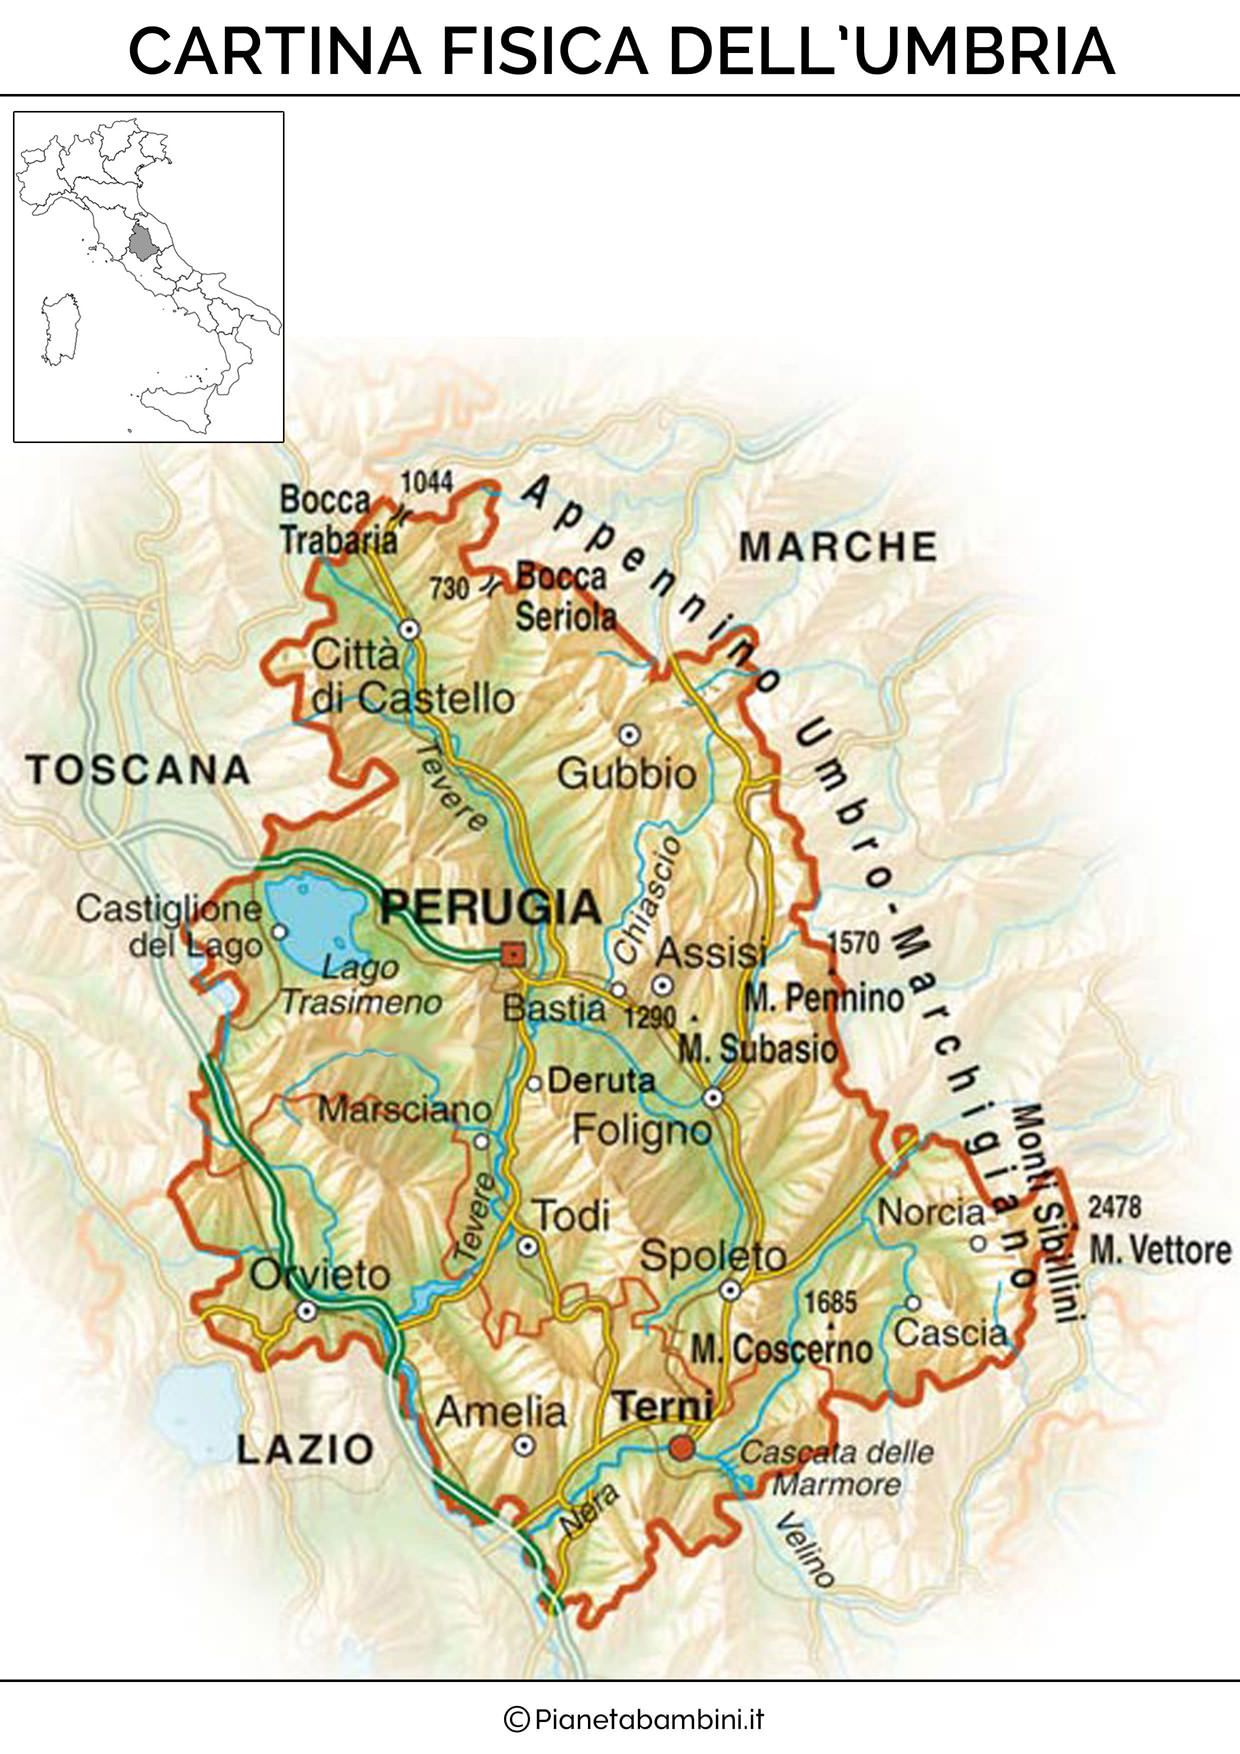 Cartina Stradale Umbria Da Stampare.Cartina Muta Fisica E Politica Dell Umbria Da Stampare Mappe Illustrate Umbria Mappe